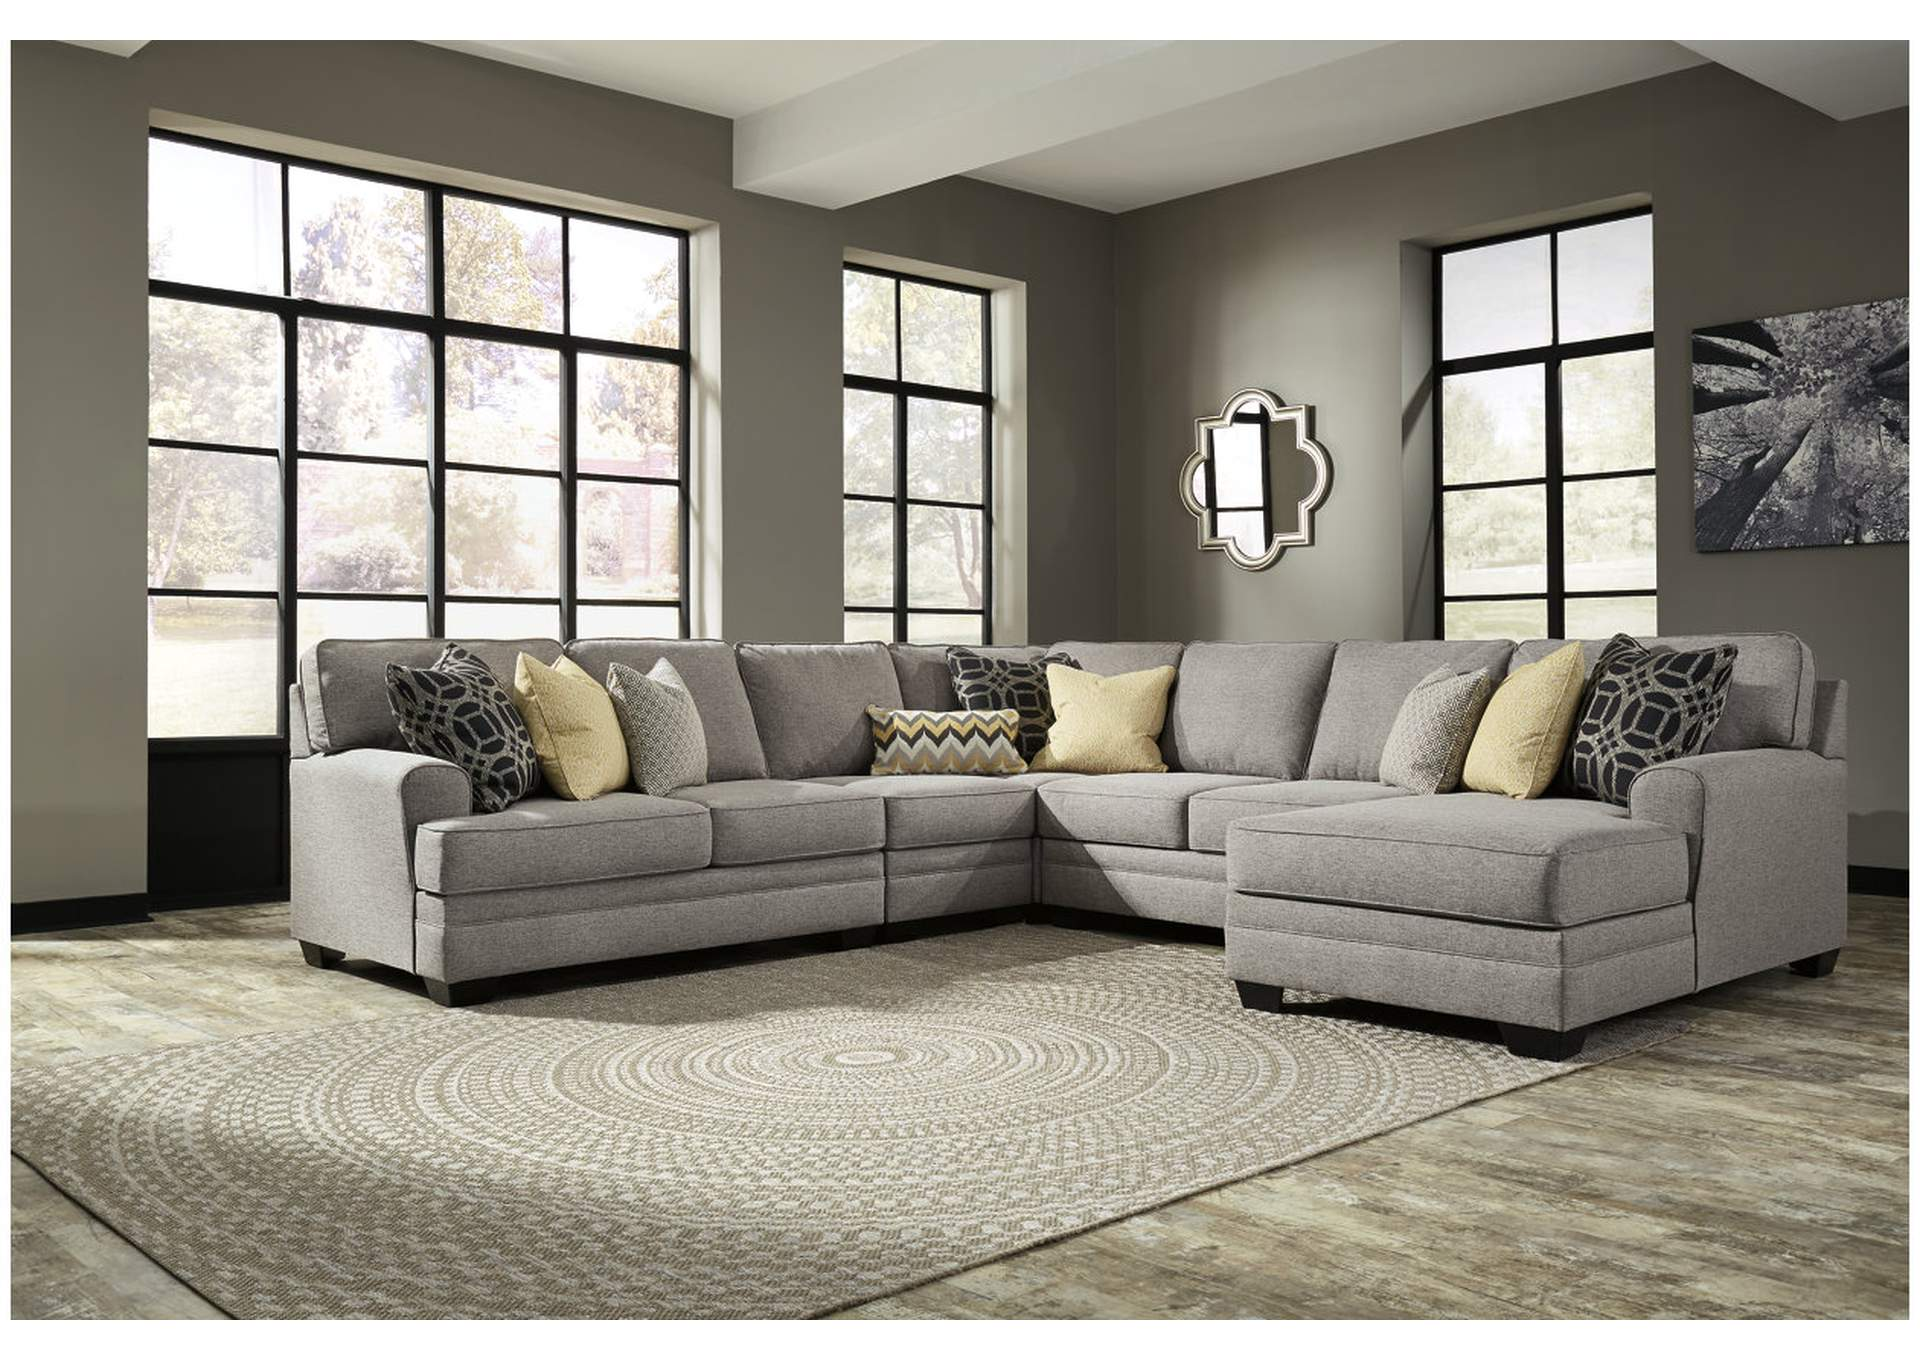 corner sectional sofa reviews larson birch lane ivan smith cresson pewter left facing loveseat ...